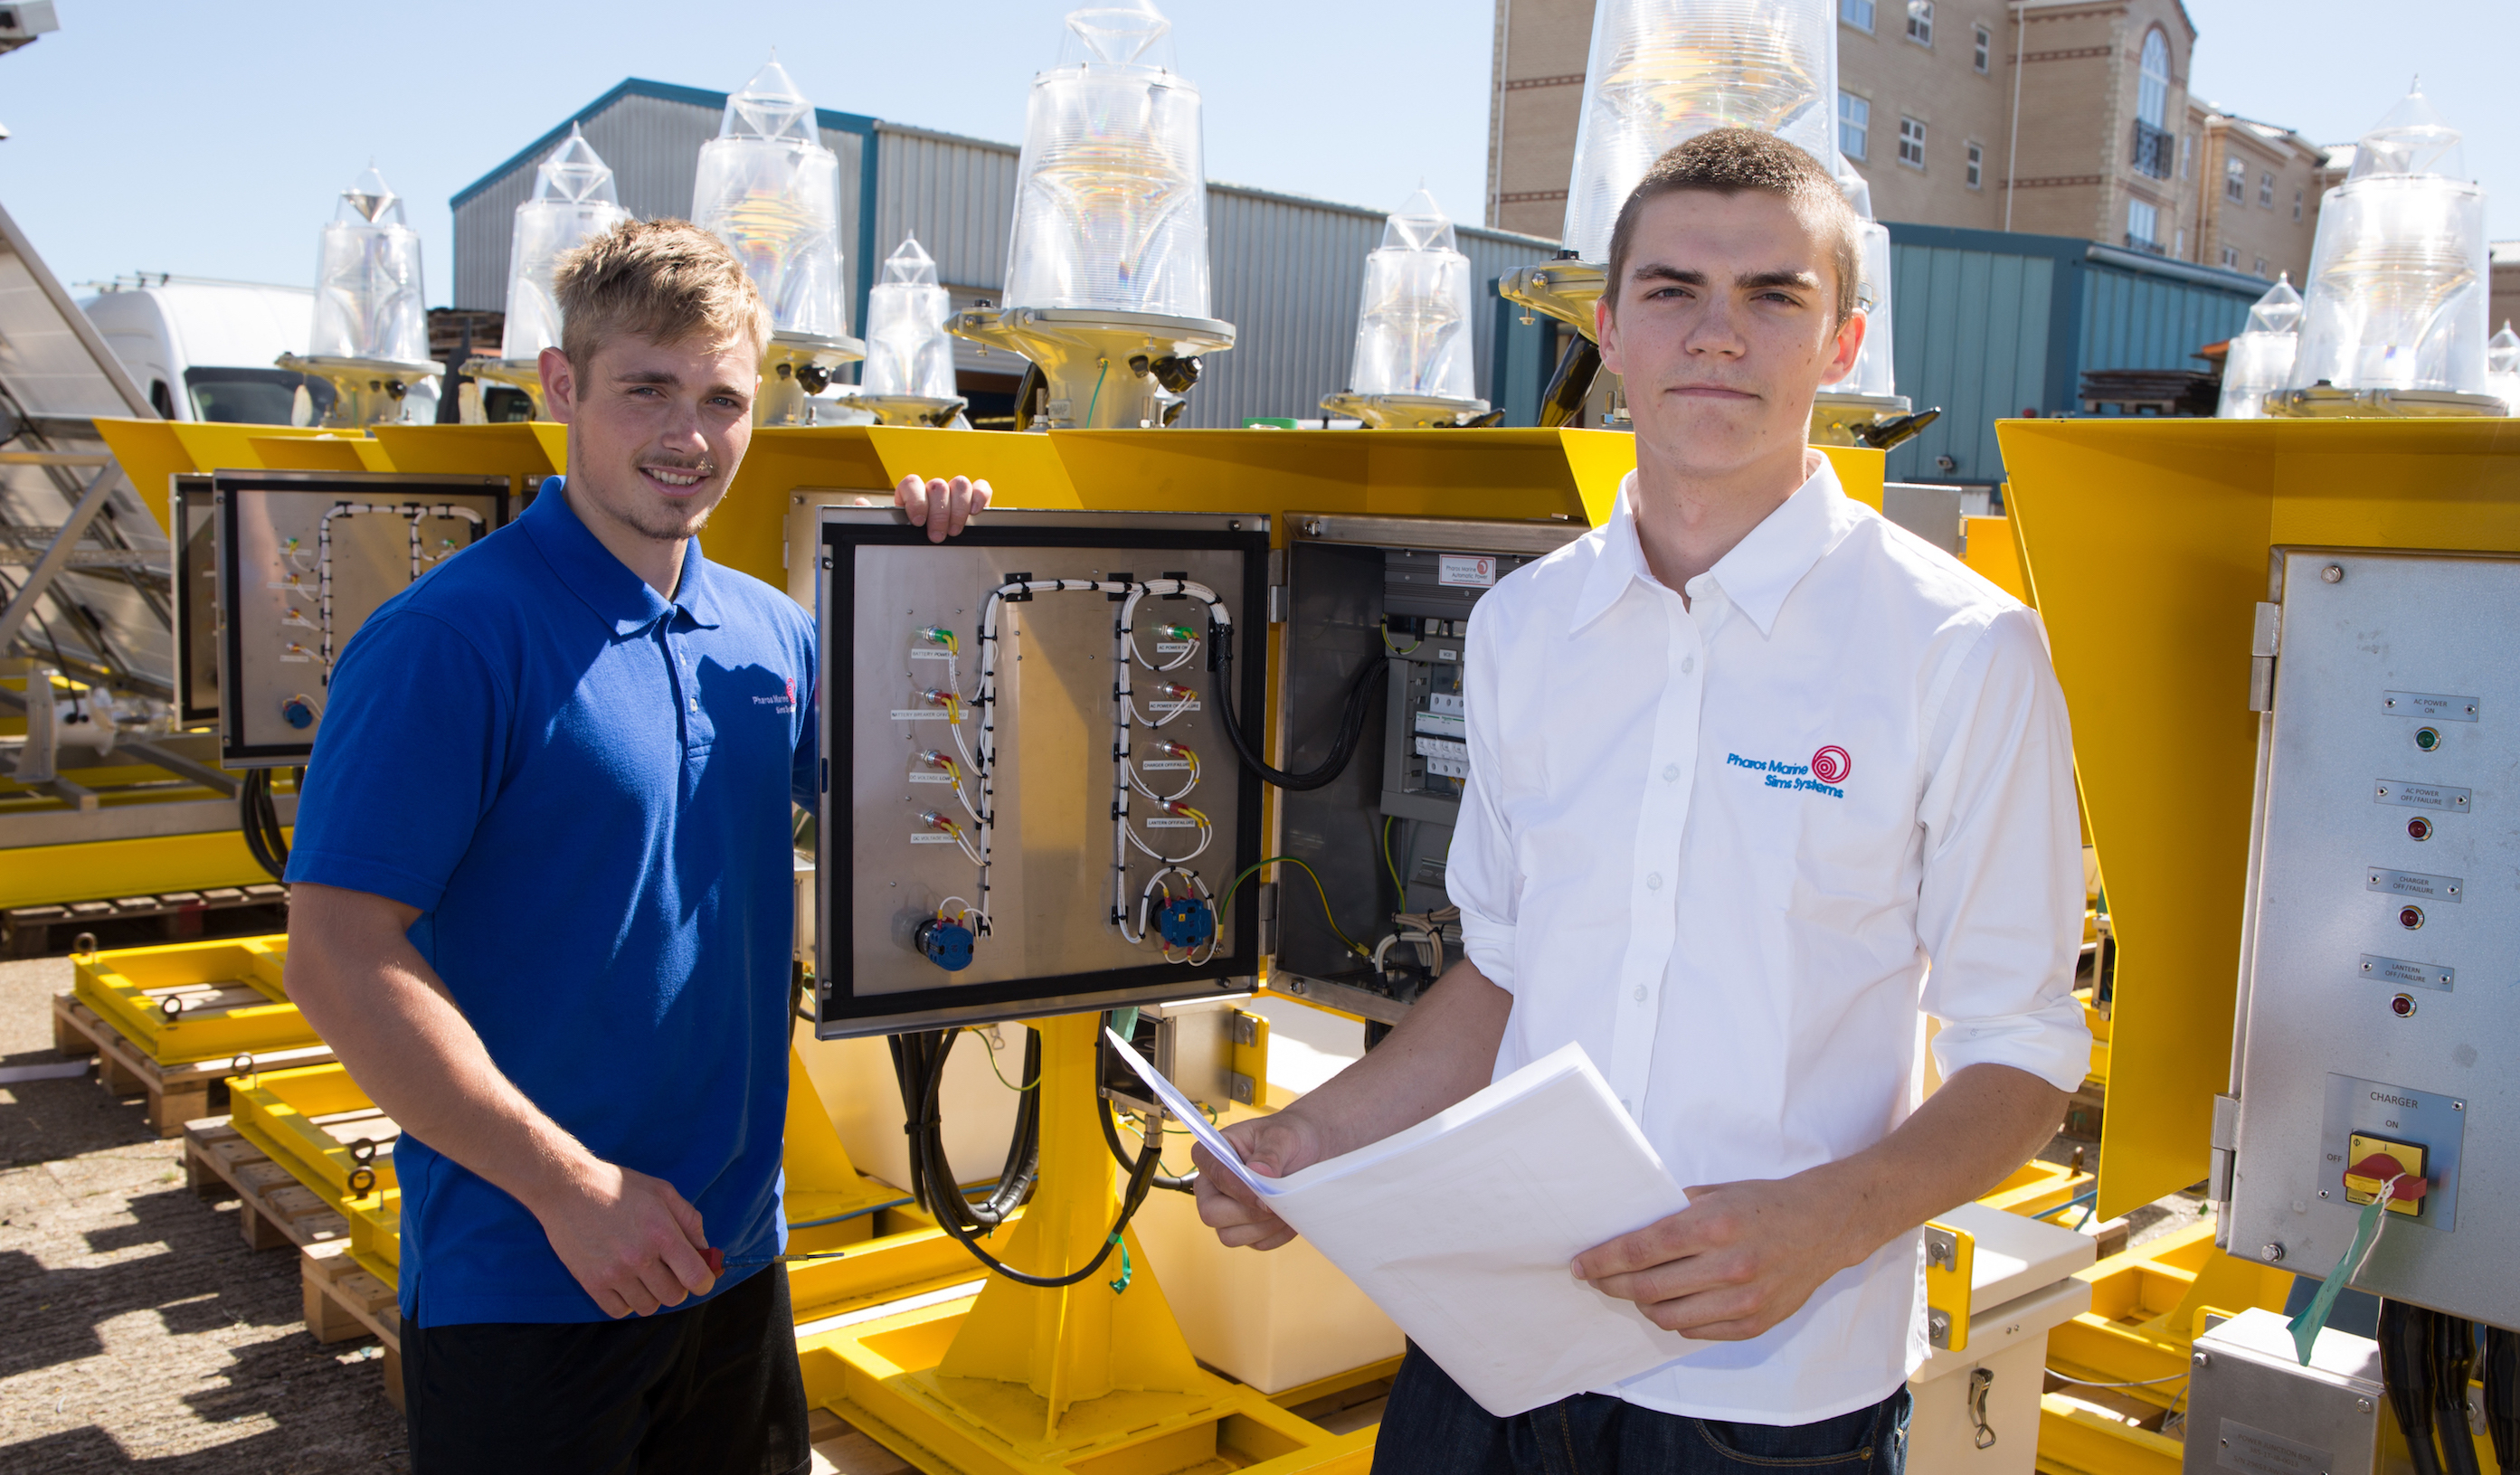 Apprentices Tom Woodruff (right) and Cory Newland, taken on by Pharos Marine Sims Systems to complete their apprenticeships after being made redundancy because of the oil & gas industry downturn